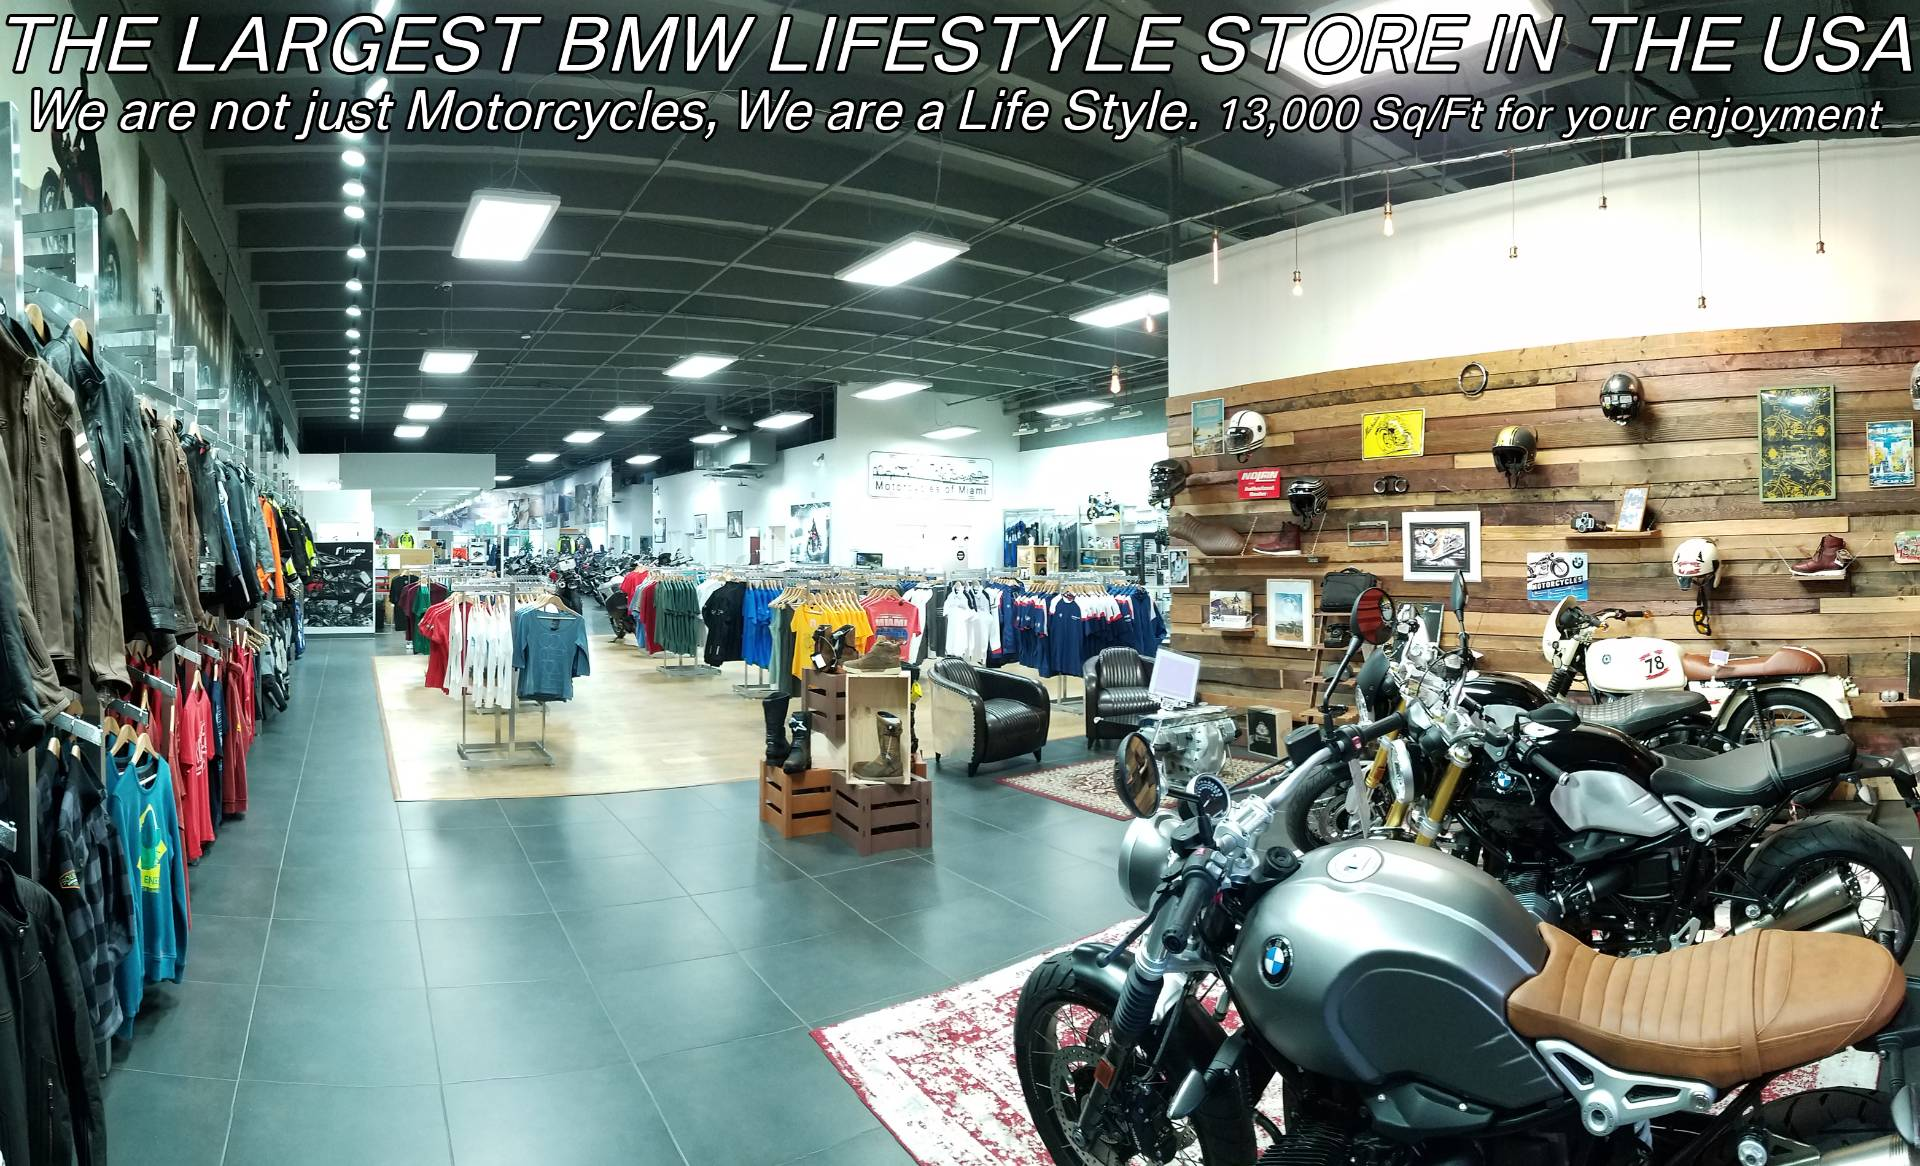 BMW Motorcycles of Miami, Motorcycles of Miami, Motorcycles Miami, New Motorcycles, Used Motorcycles, pre-owned. #BMWMotorcyclesOfMiami #MotorcyclesOfMiami. - Photo 18